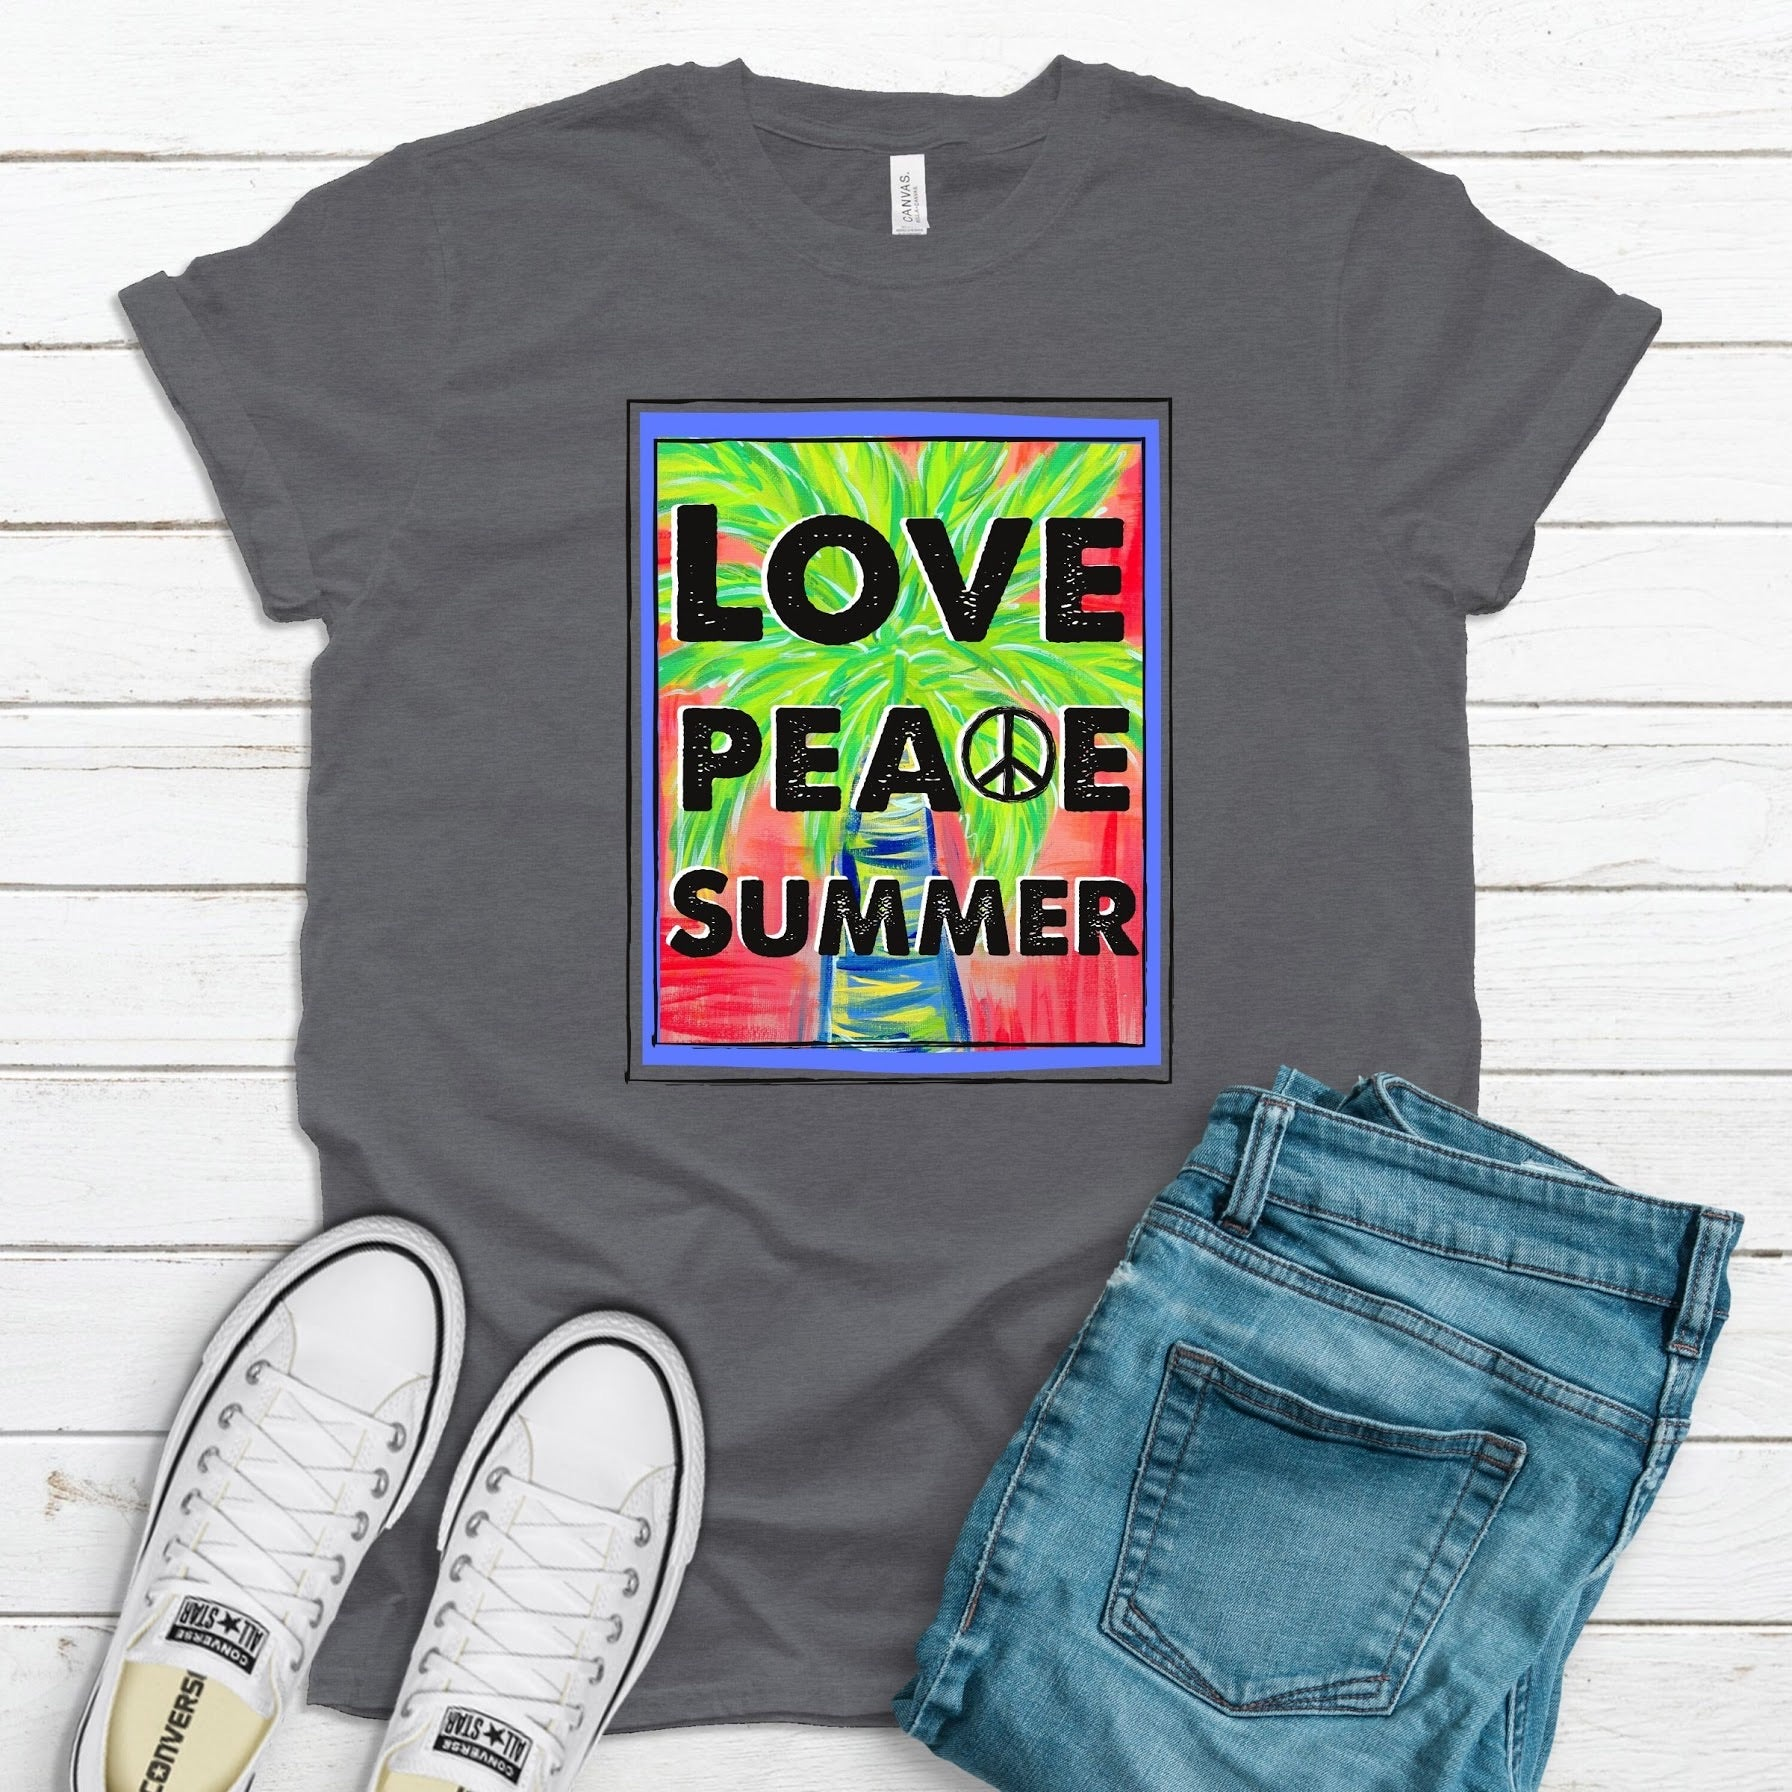 Love, Peace, Summer ~ Deep Heather ~ Adult T-Shirt-Shop-Wholesale-Womens-Boutique-Custom-Graphic-Tees-Branding-Gifts